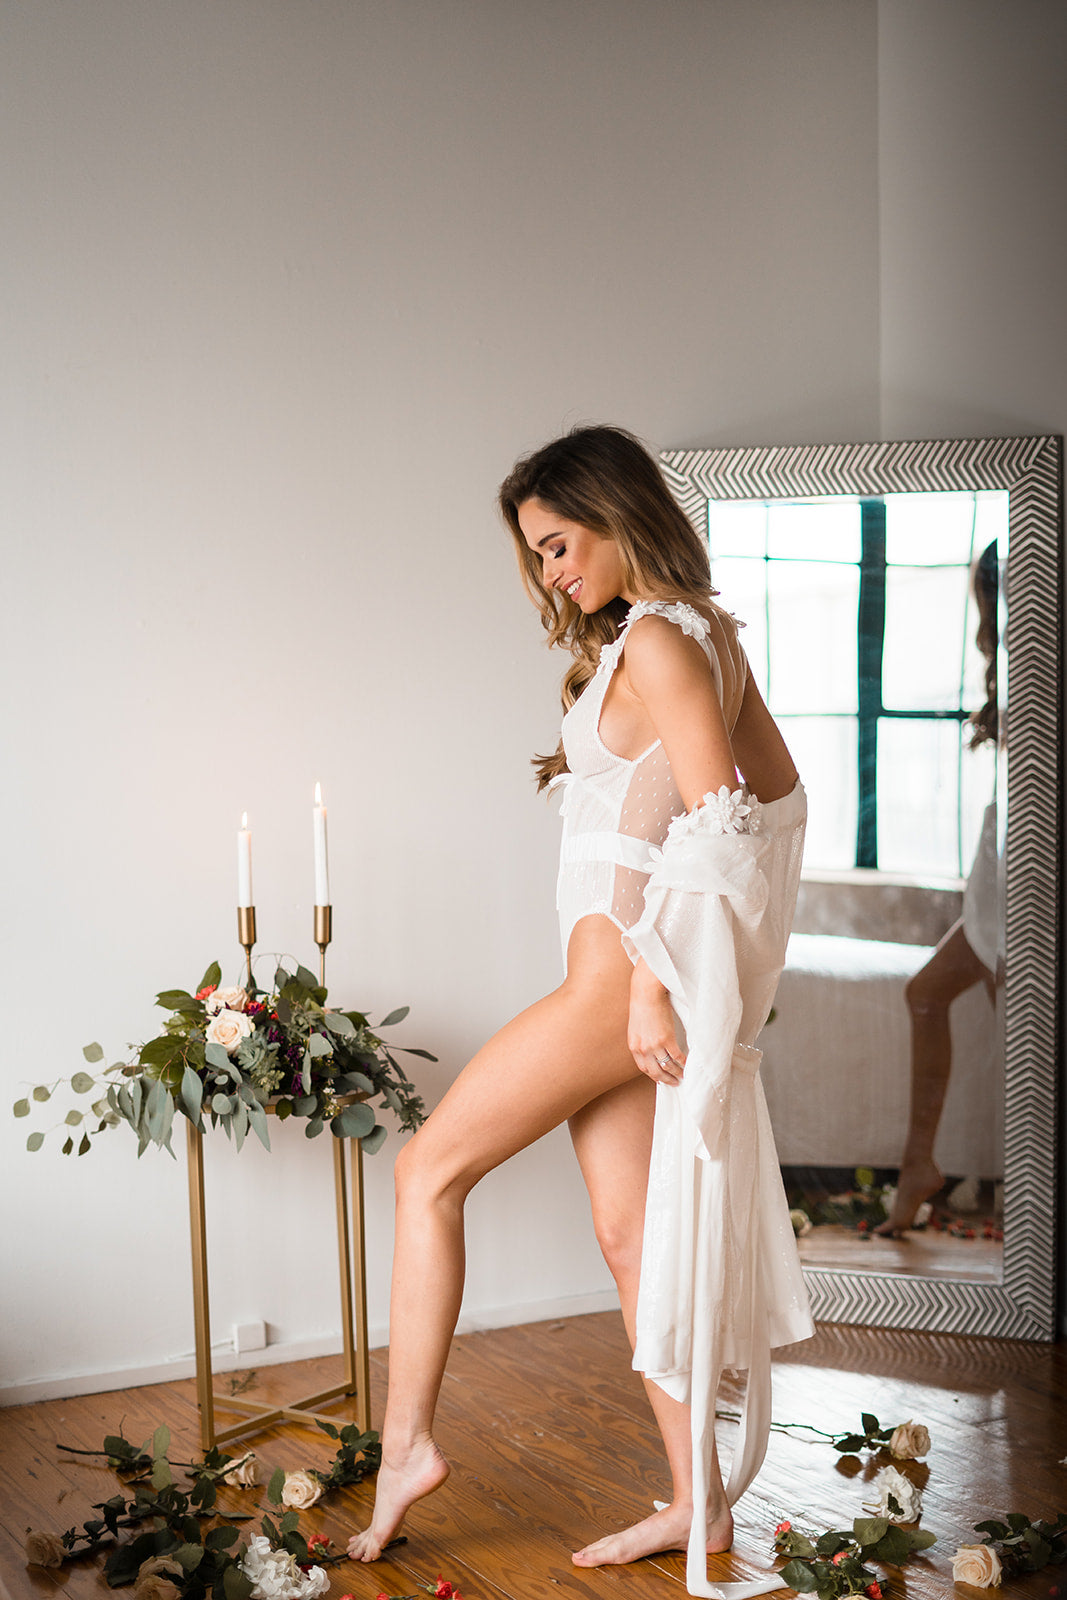 white robe with flowers for wedding